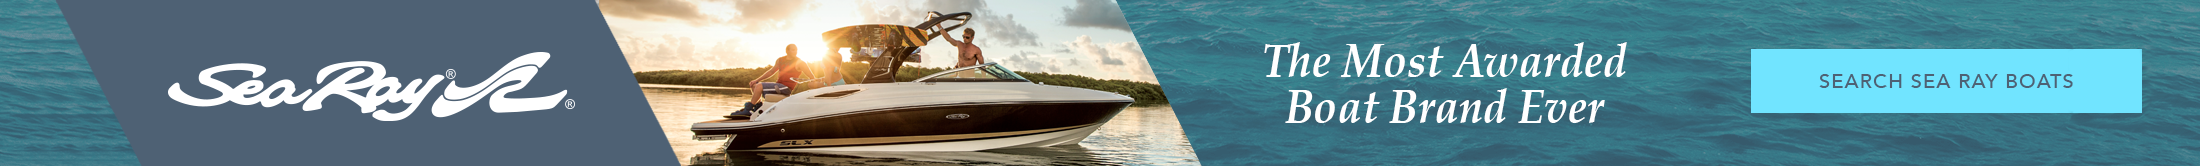 New And Used Boats For Sale Skipperbud S Midwest Boat Dealer